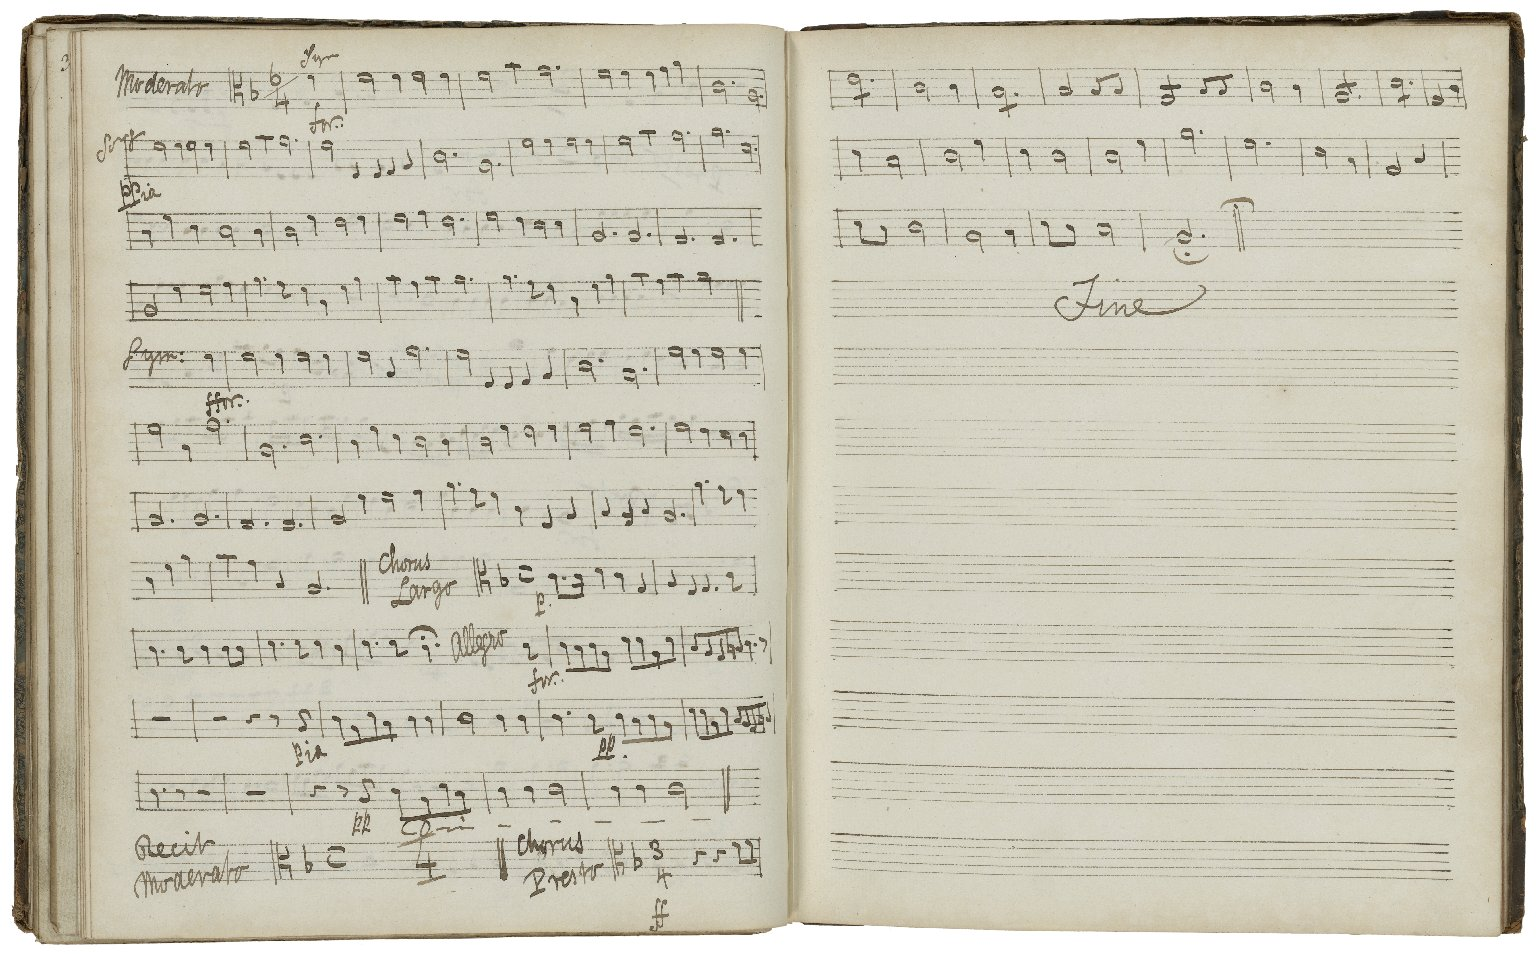 Collection of songs arranged for use by the Oxford Music Room chorus and orchestra [manuscript].